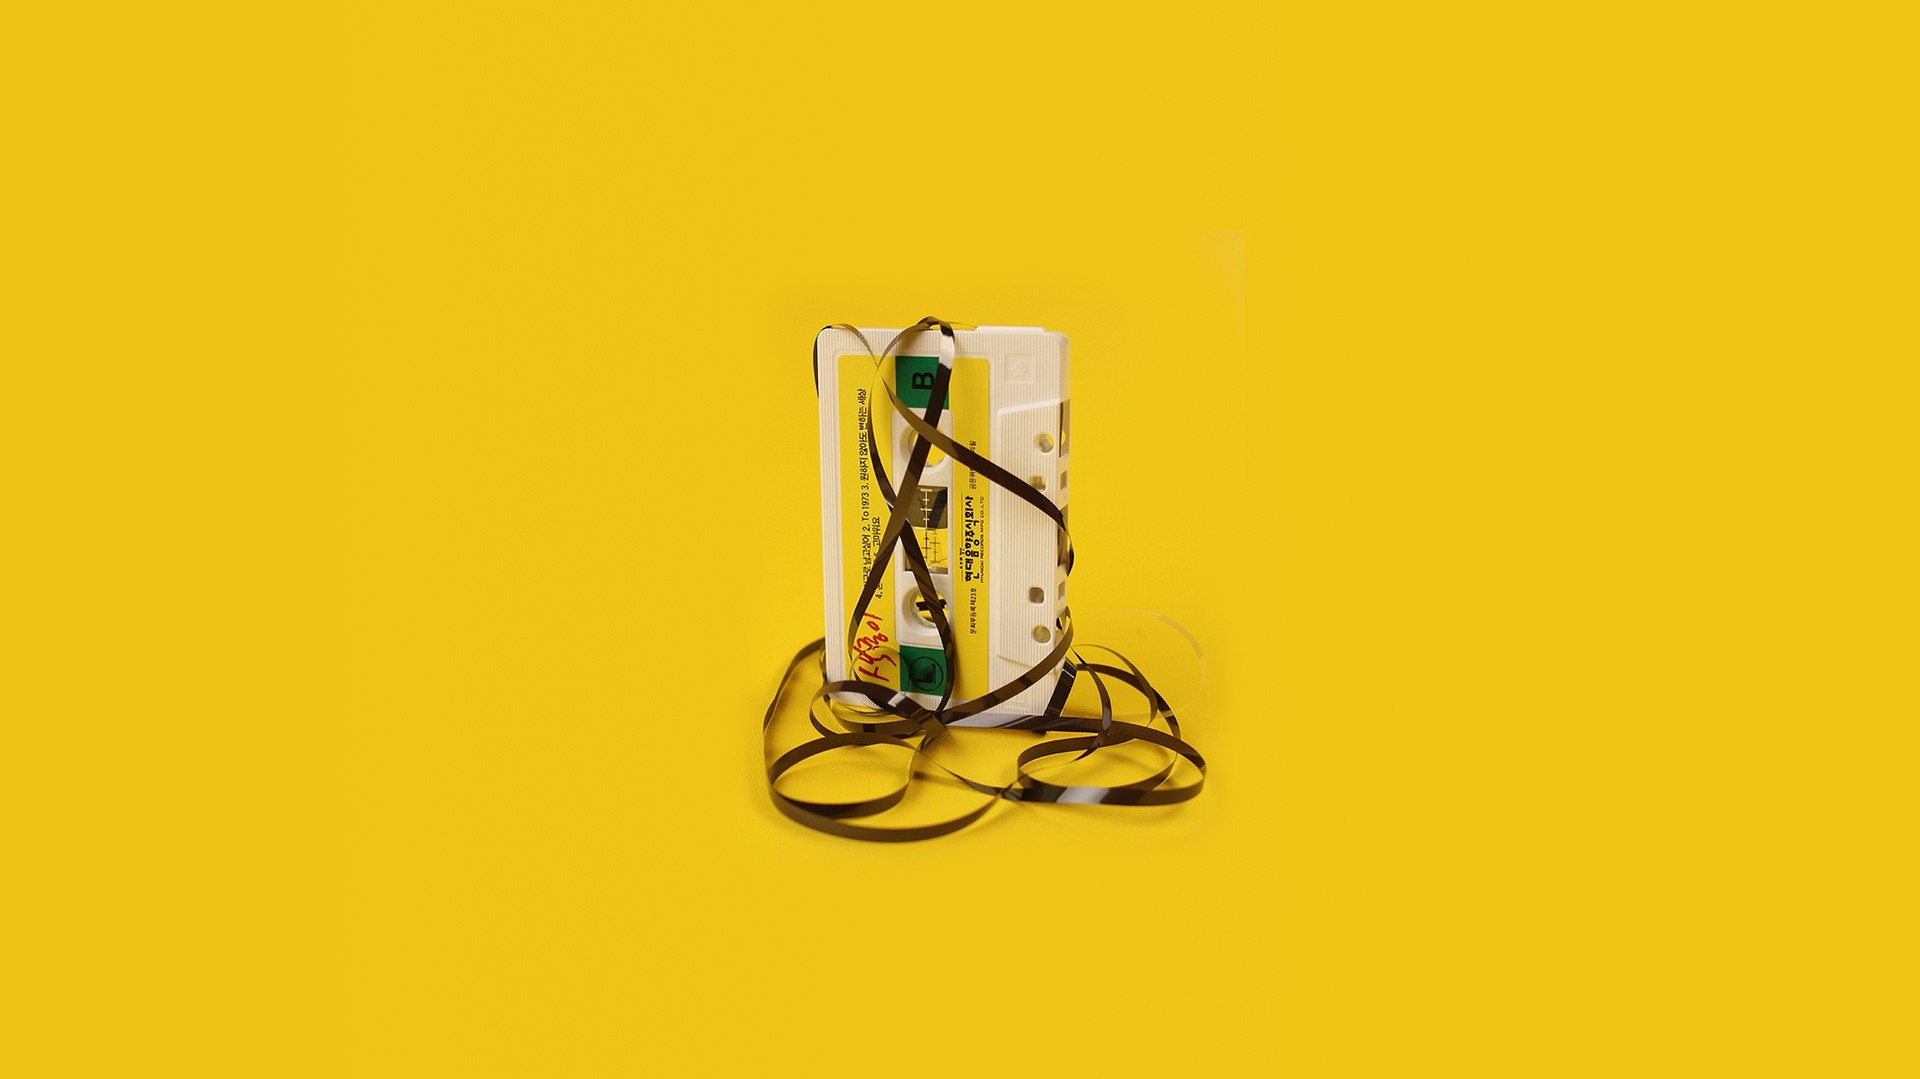 Minimalistic Cassette Simple Background Yellow Wallpaper